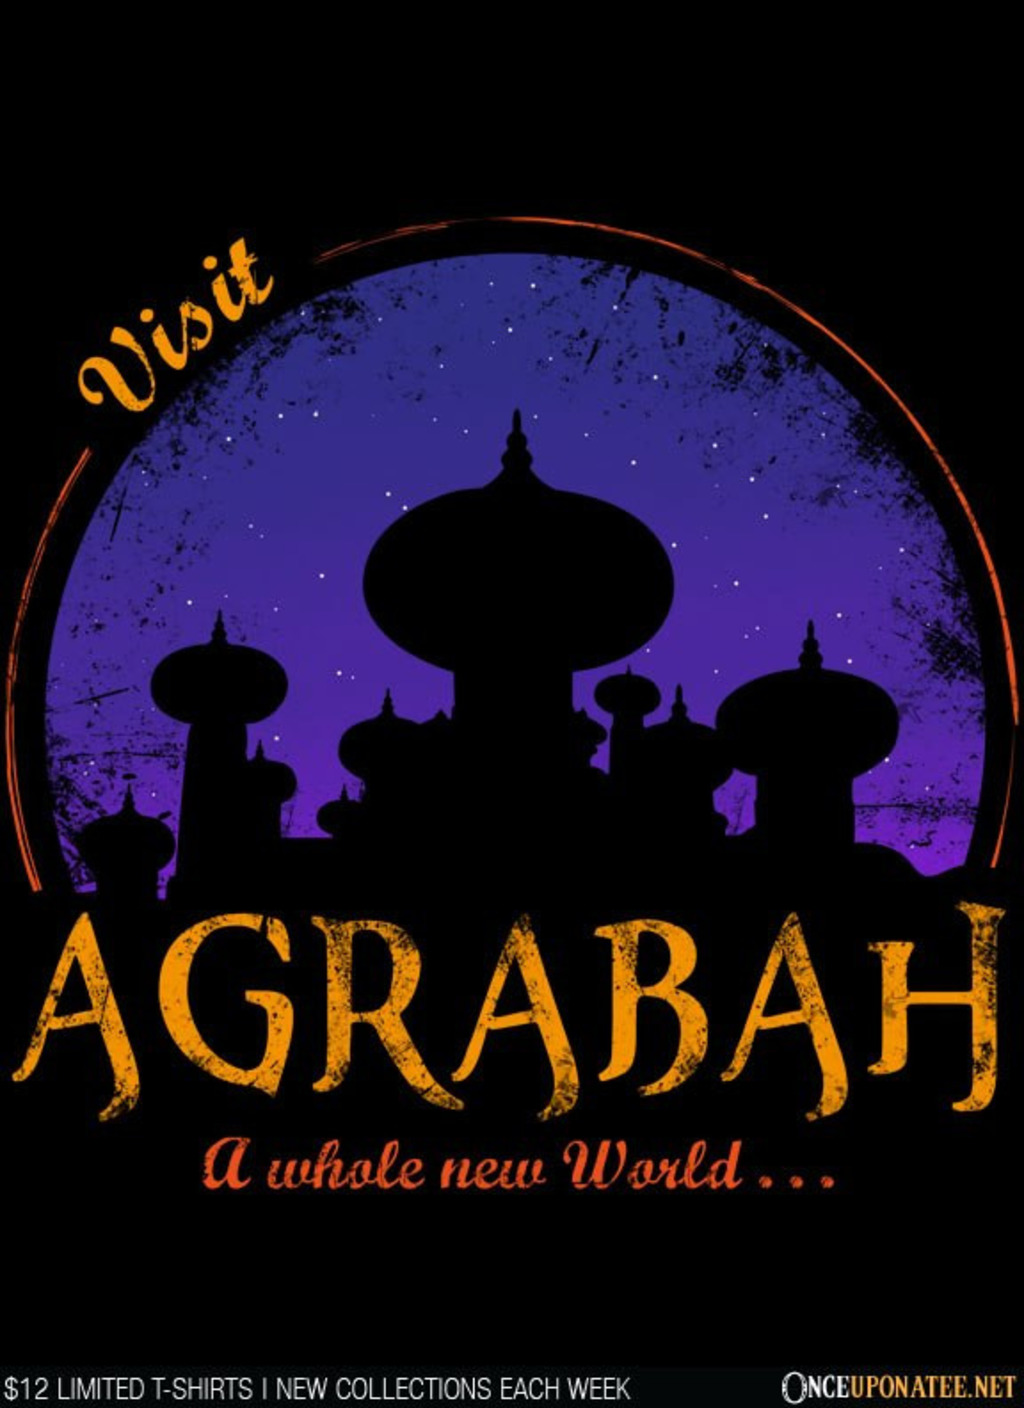 Once Upon a Tee: Visit Agrabah